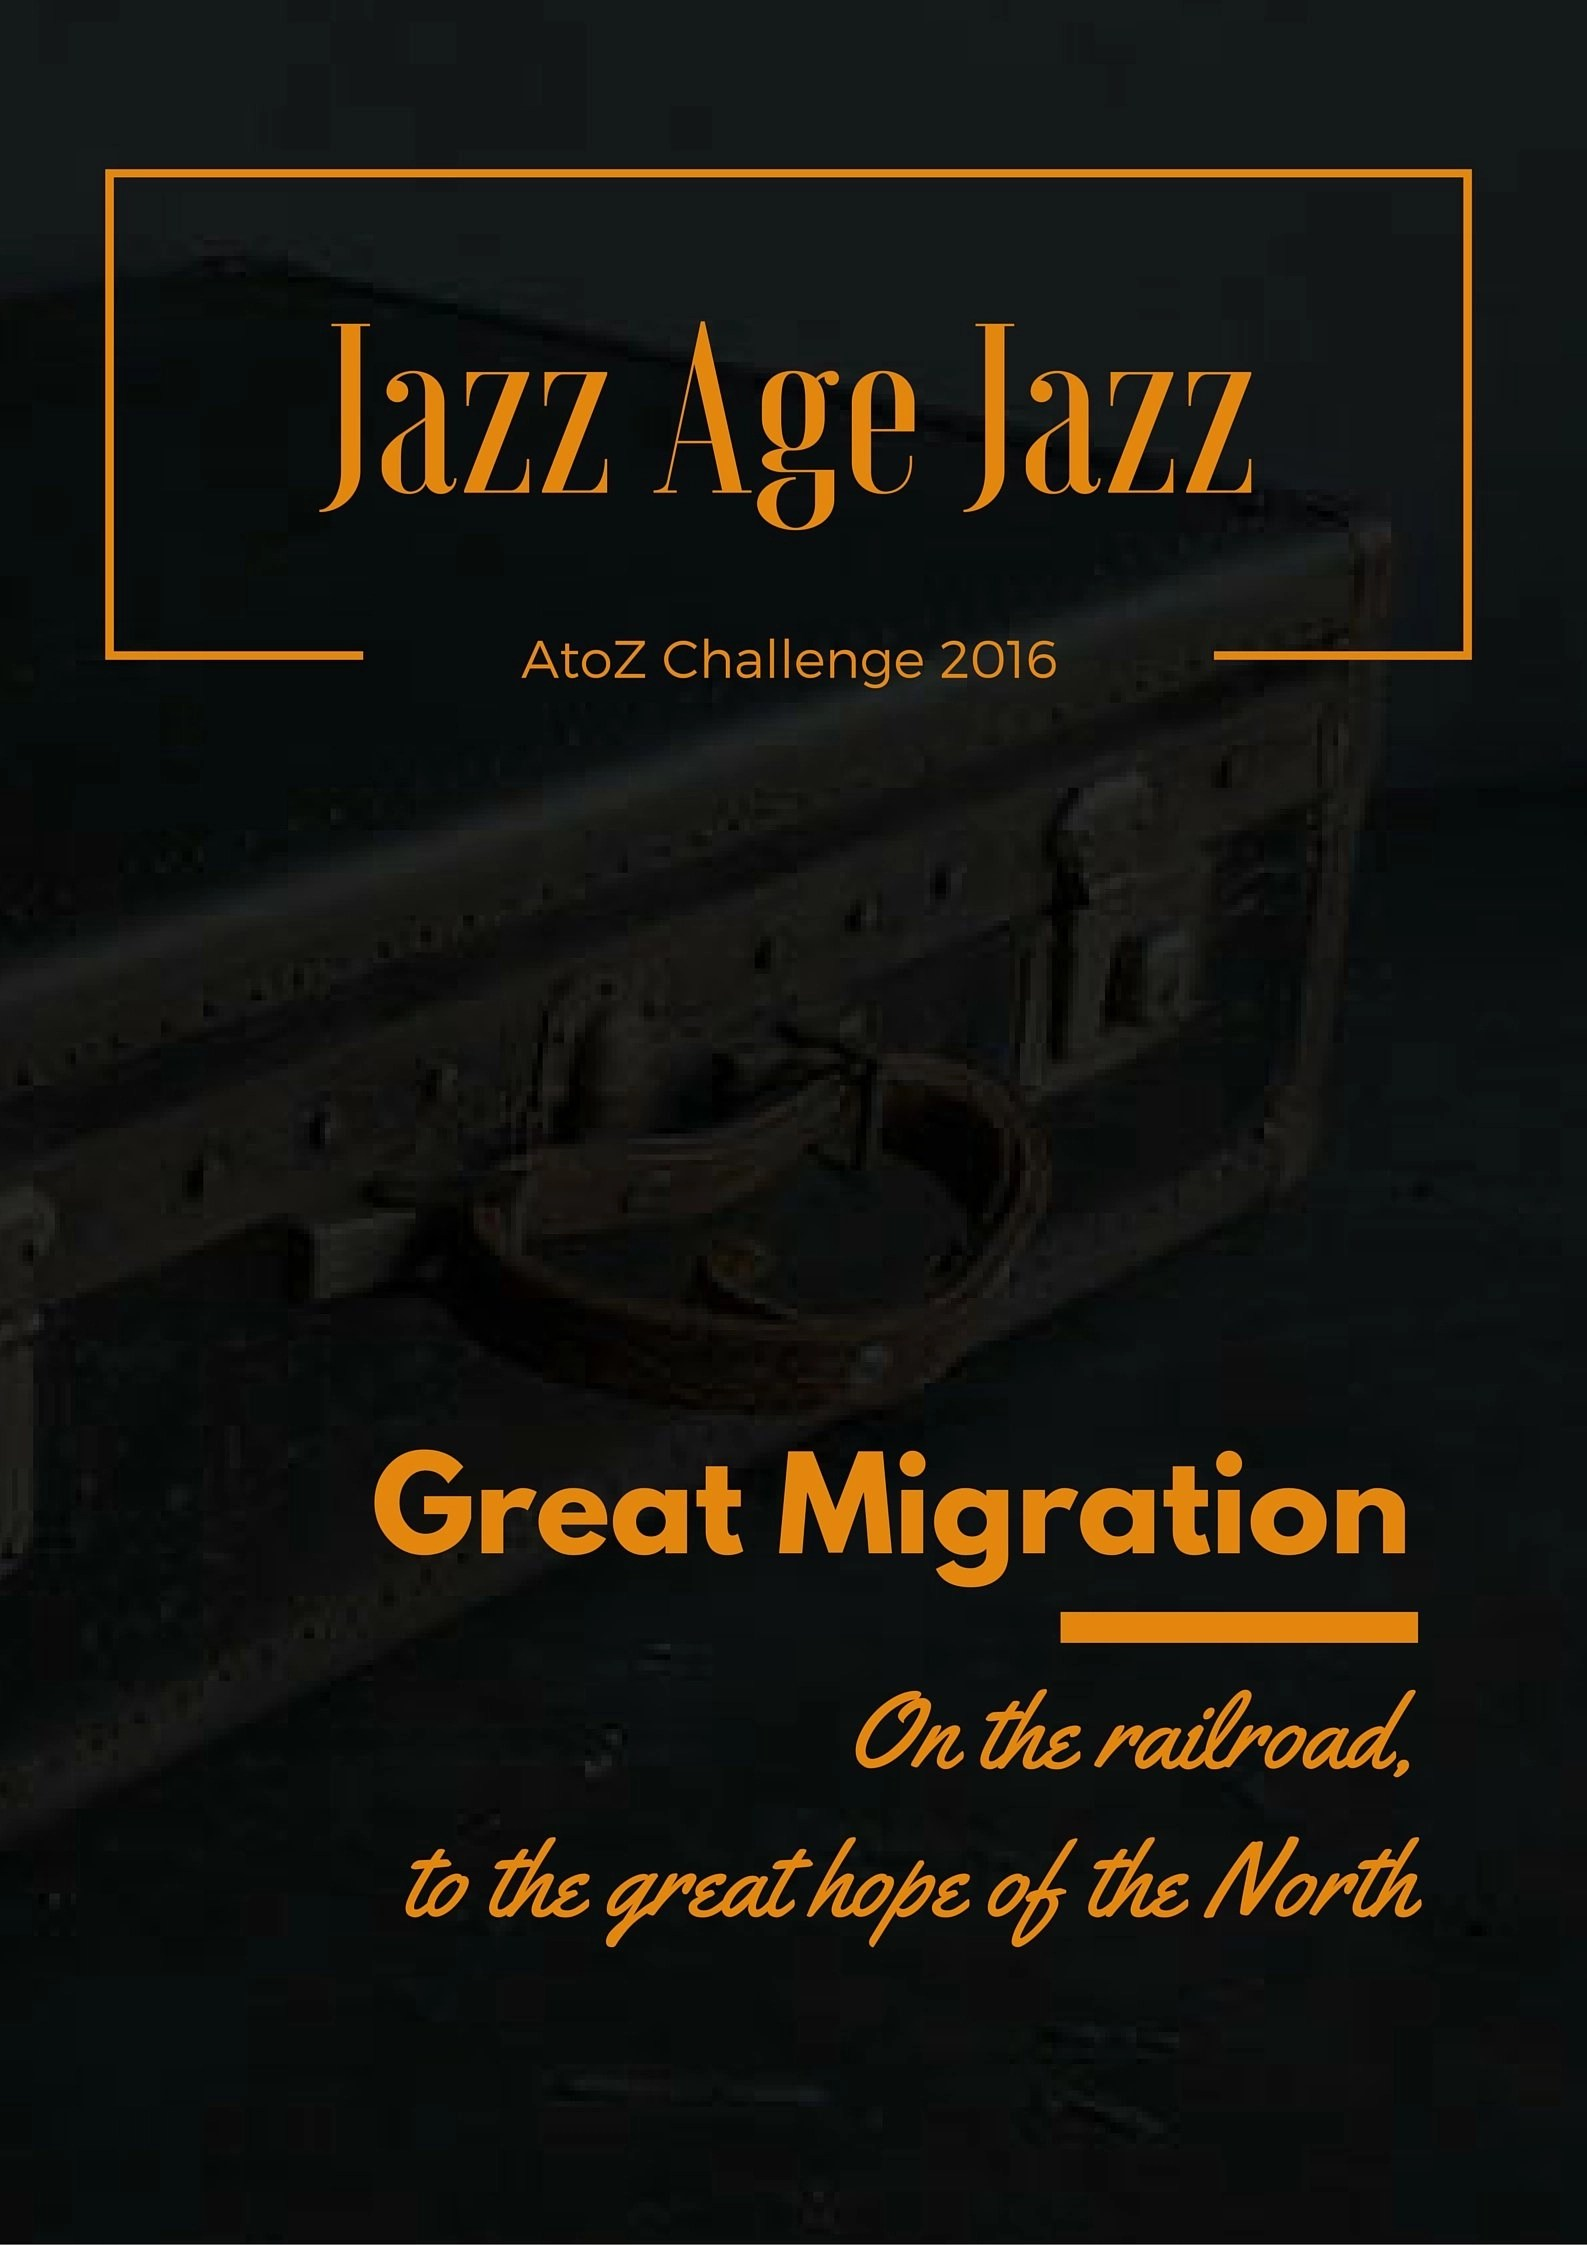 Jazz Age Jazz - Great Migration: on the railroad, ot the great hope of the North